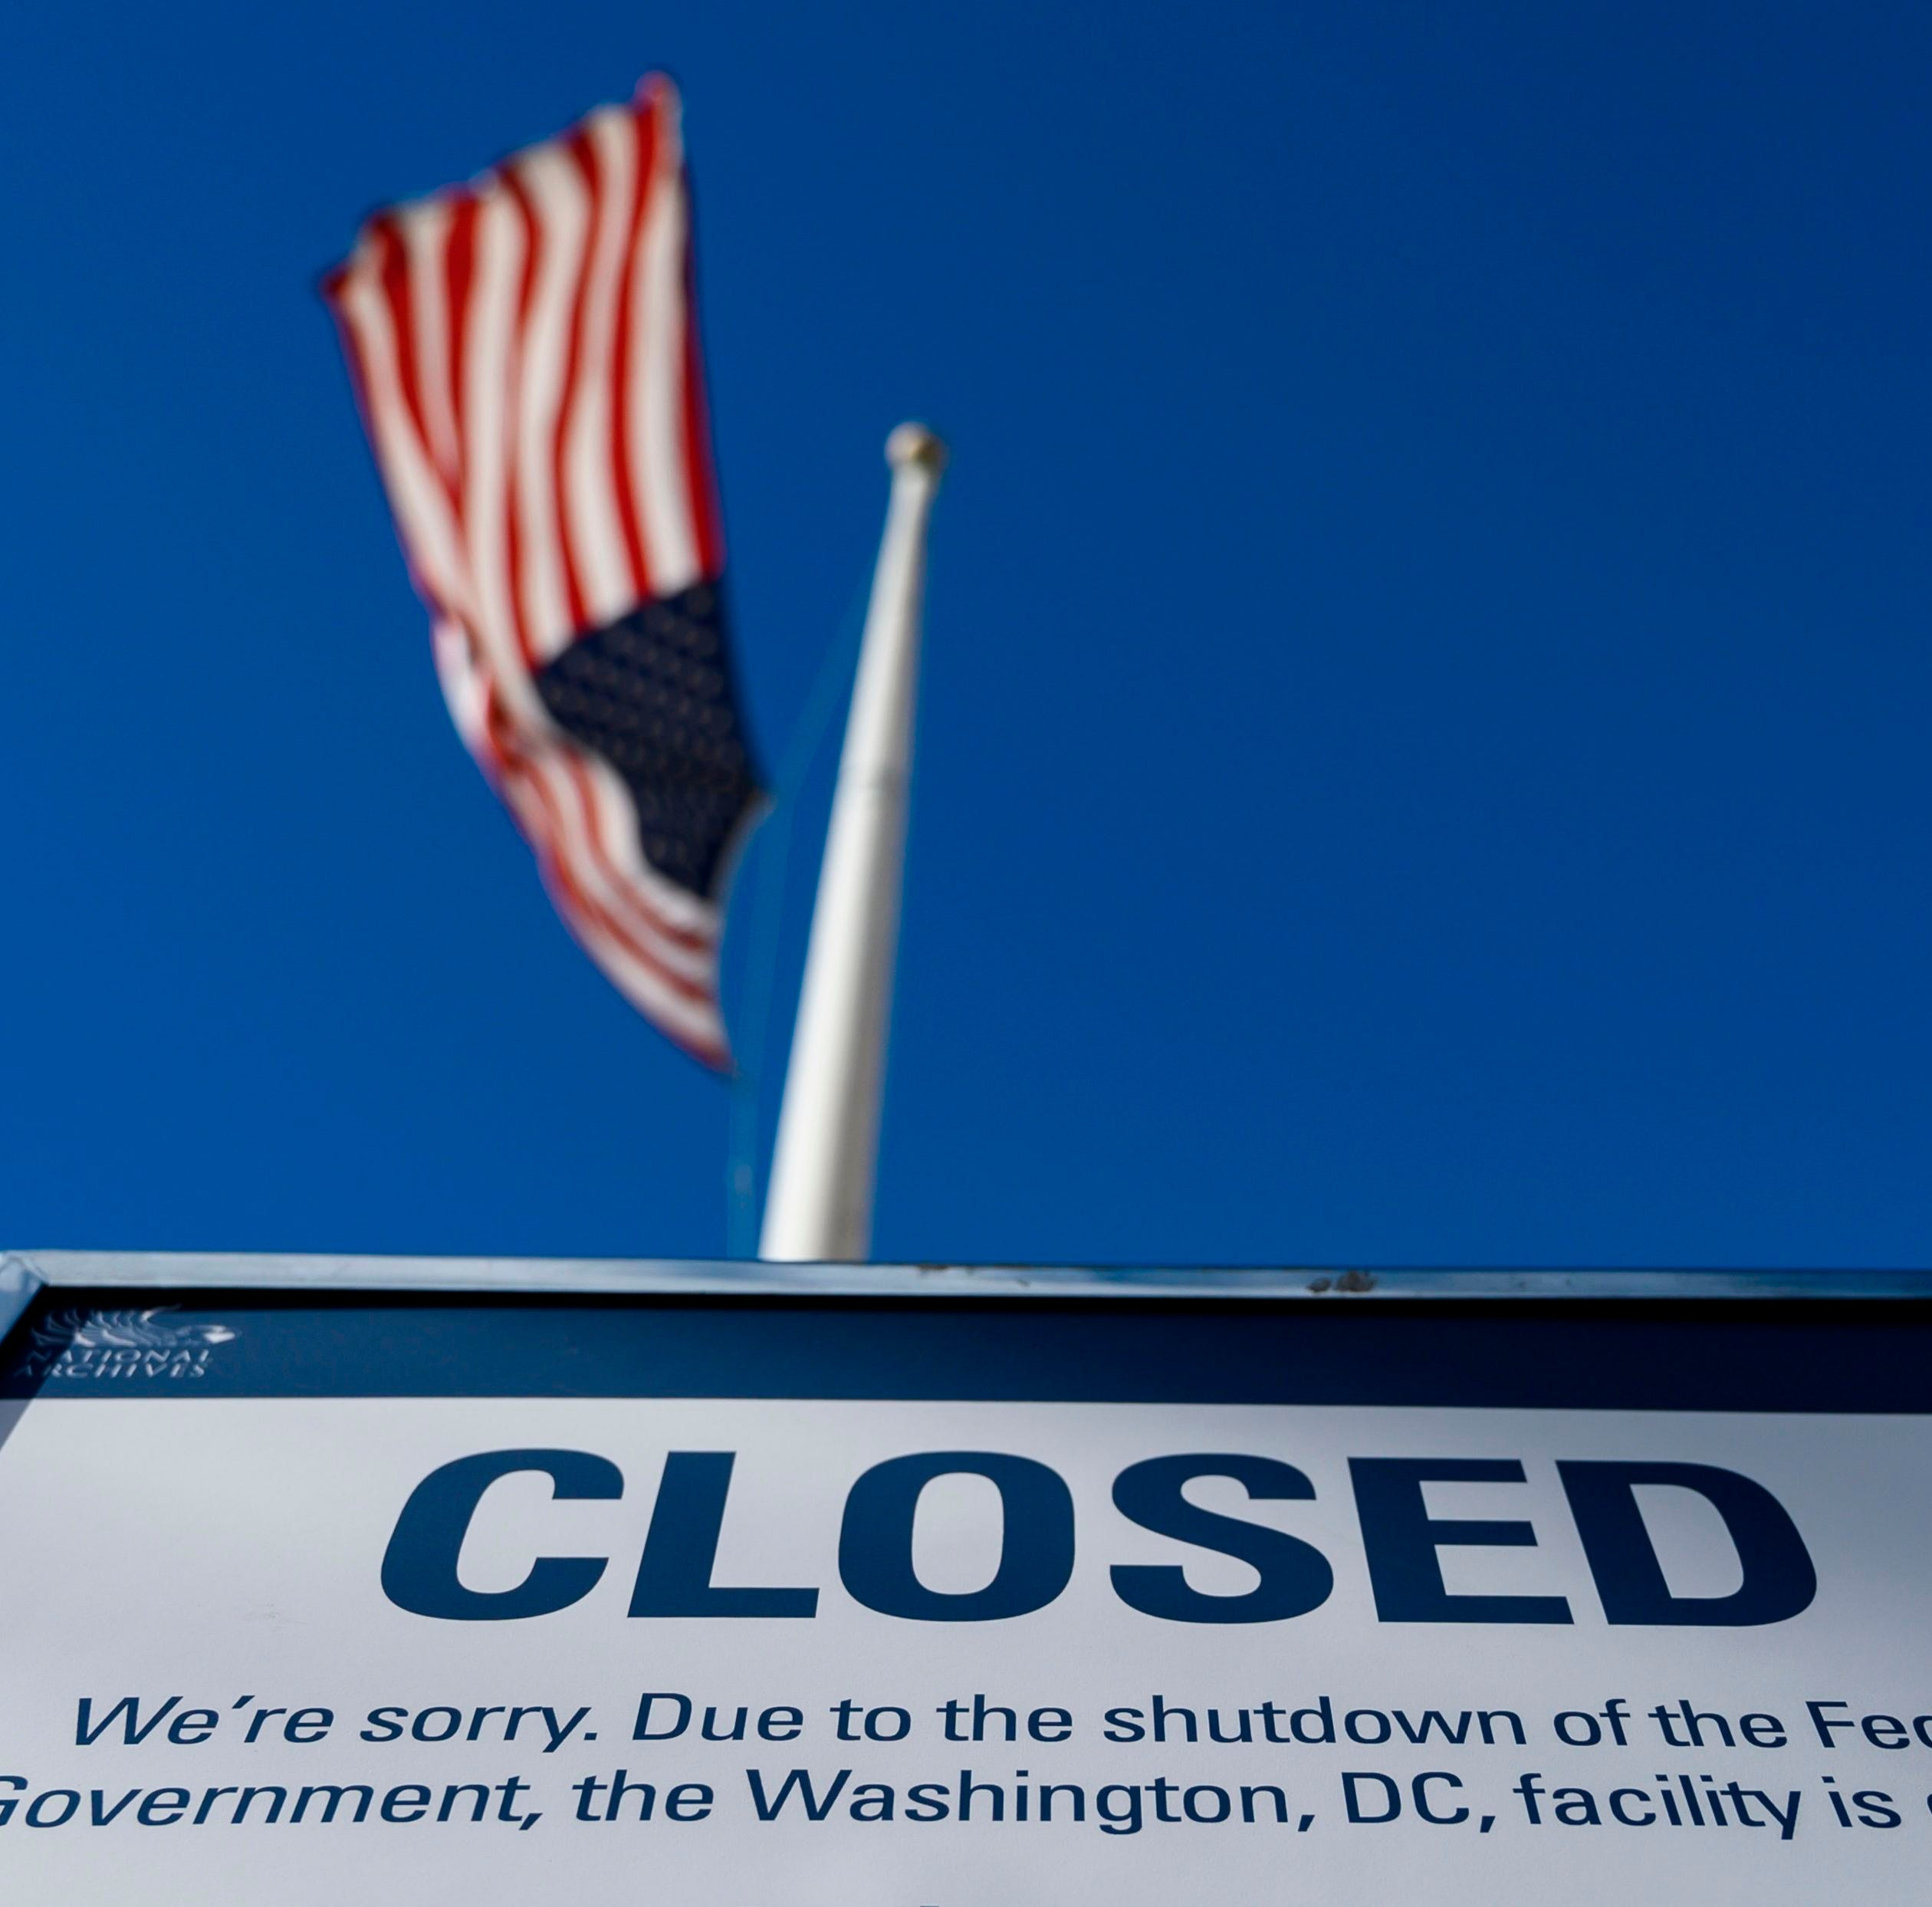 Opinion: Congress dodging accountability for shutdown